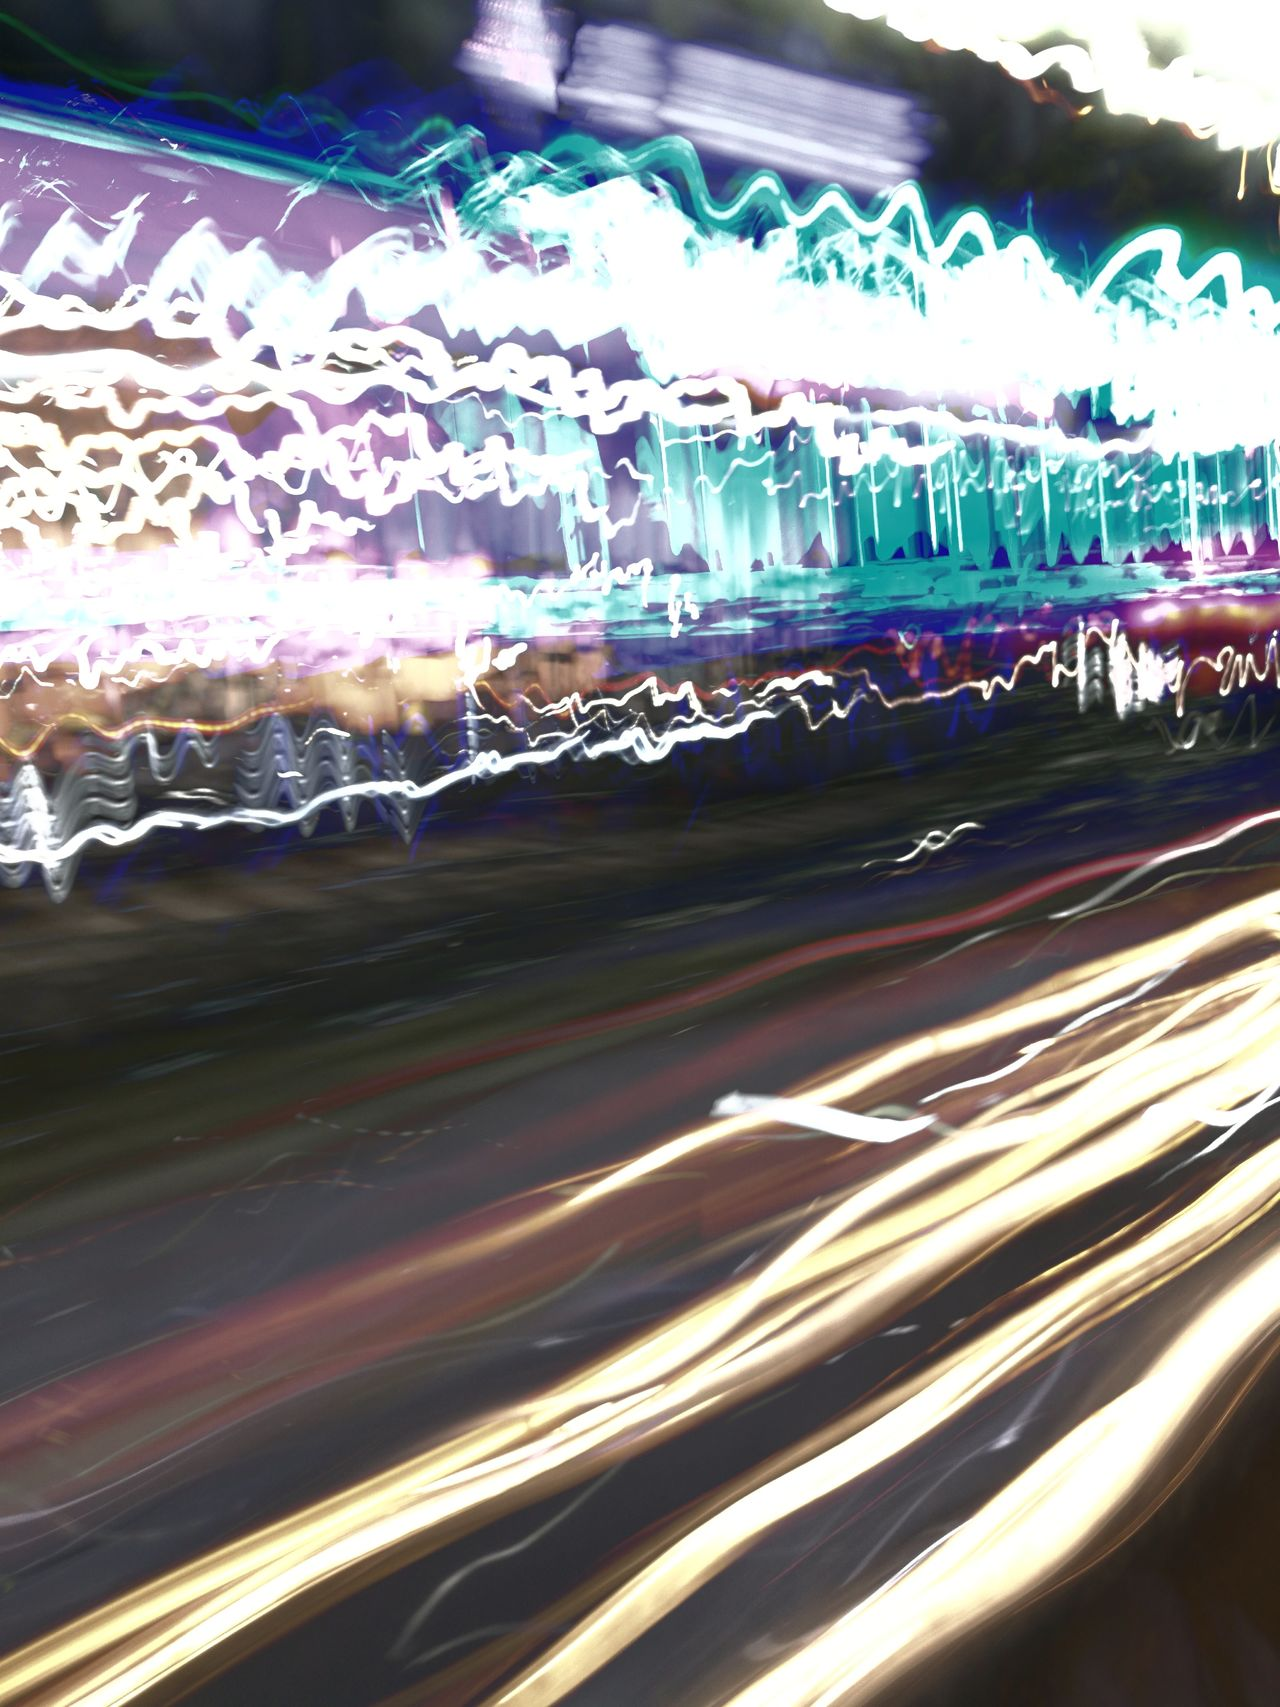 Lights Motion Outdoors HuaweiP9 Huawei HuaweiP9Photography Huawei P9. Night Photography Motion Capture Cars Car Lights Movement Lights At Night Movement Photography Ciudad Autónoma De Buenos Aires Buenos Aires Argentina Palermo Núñez